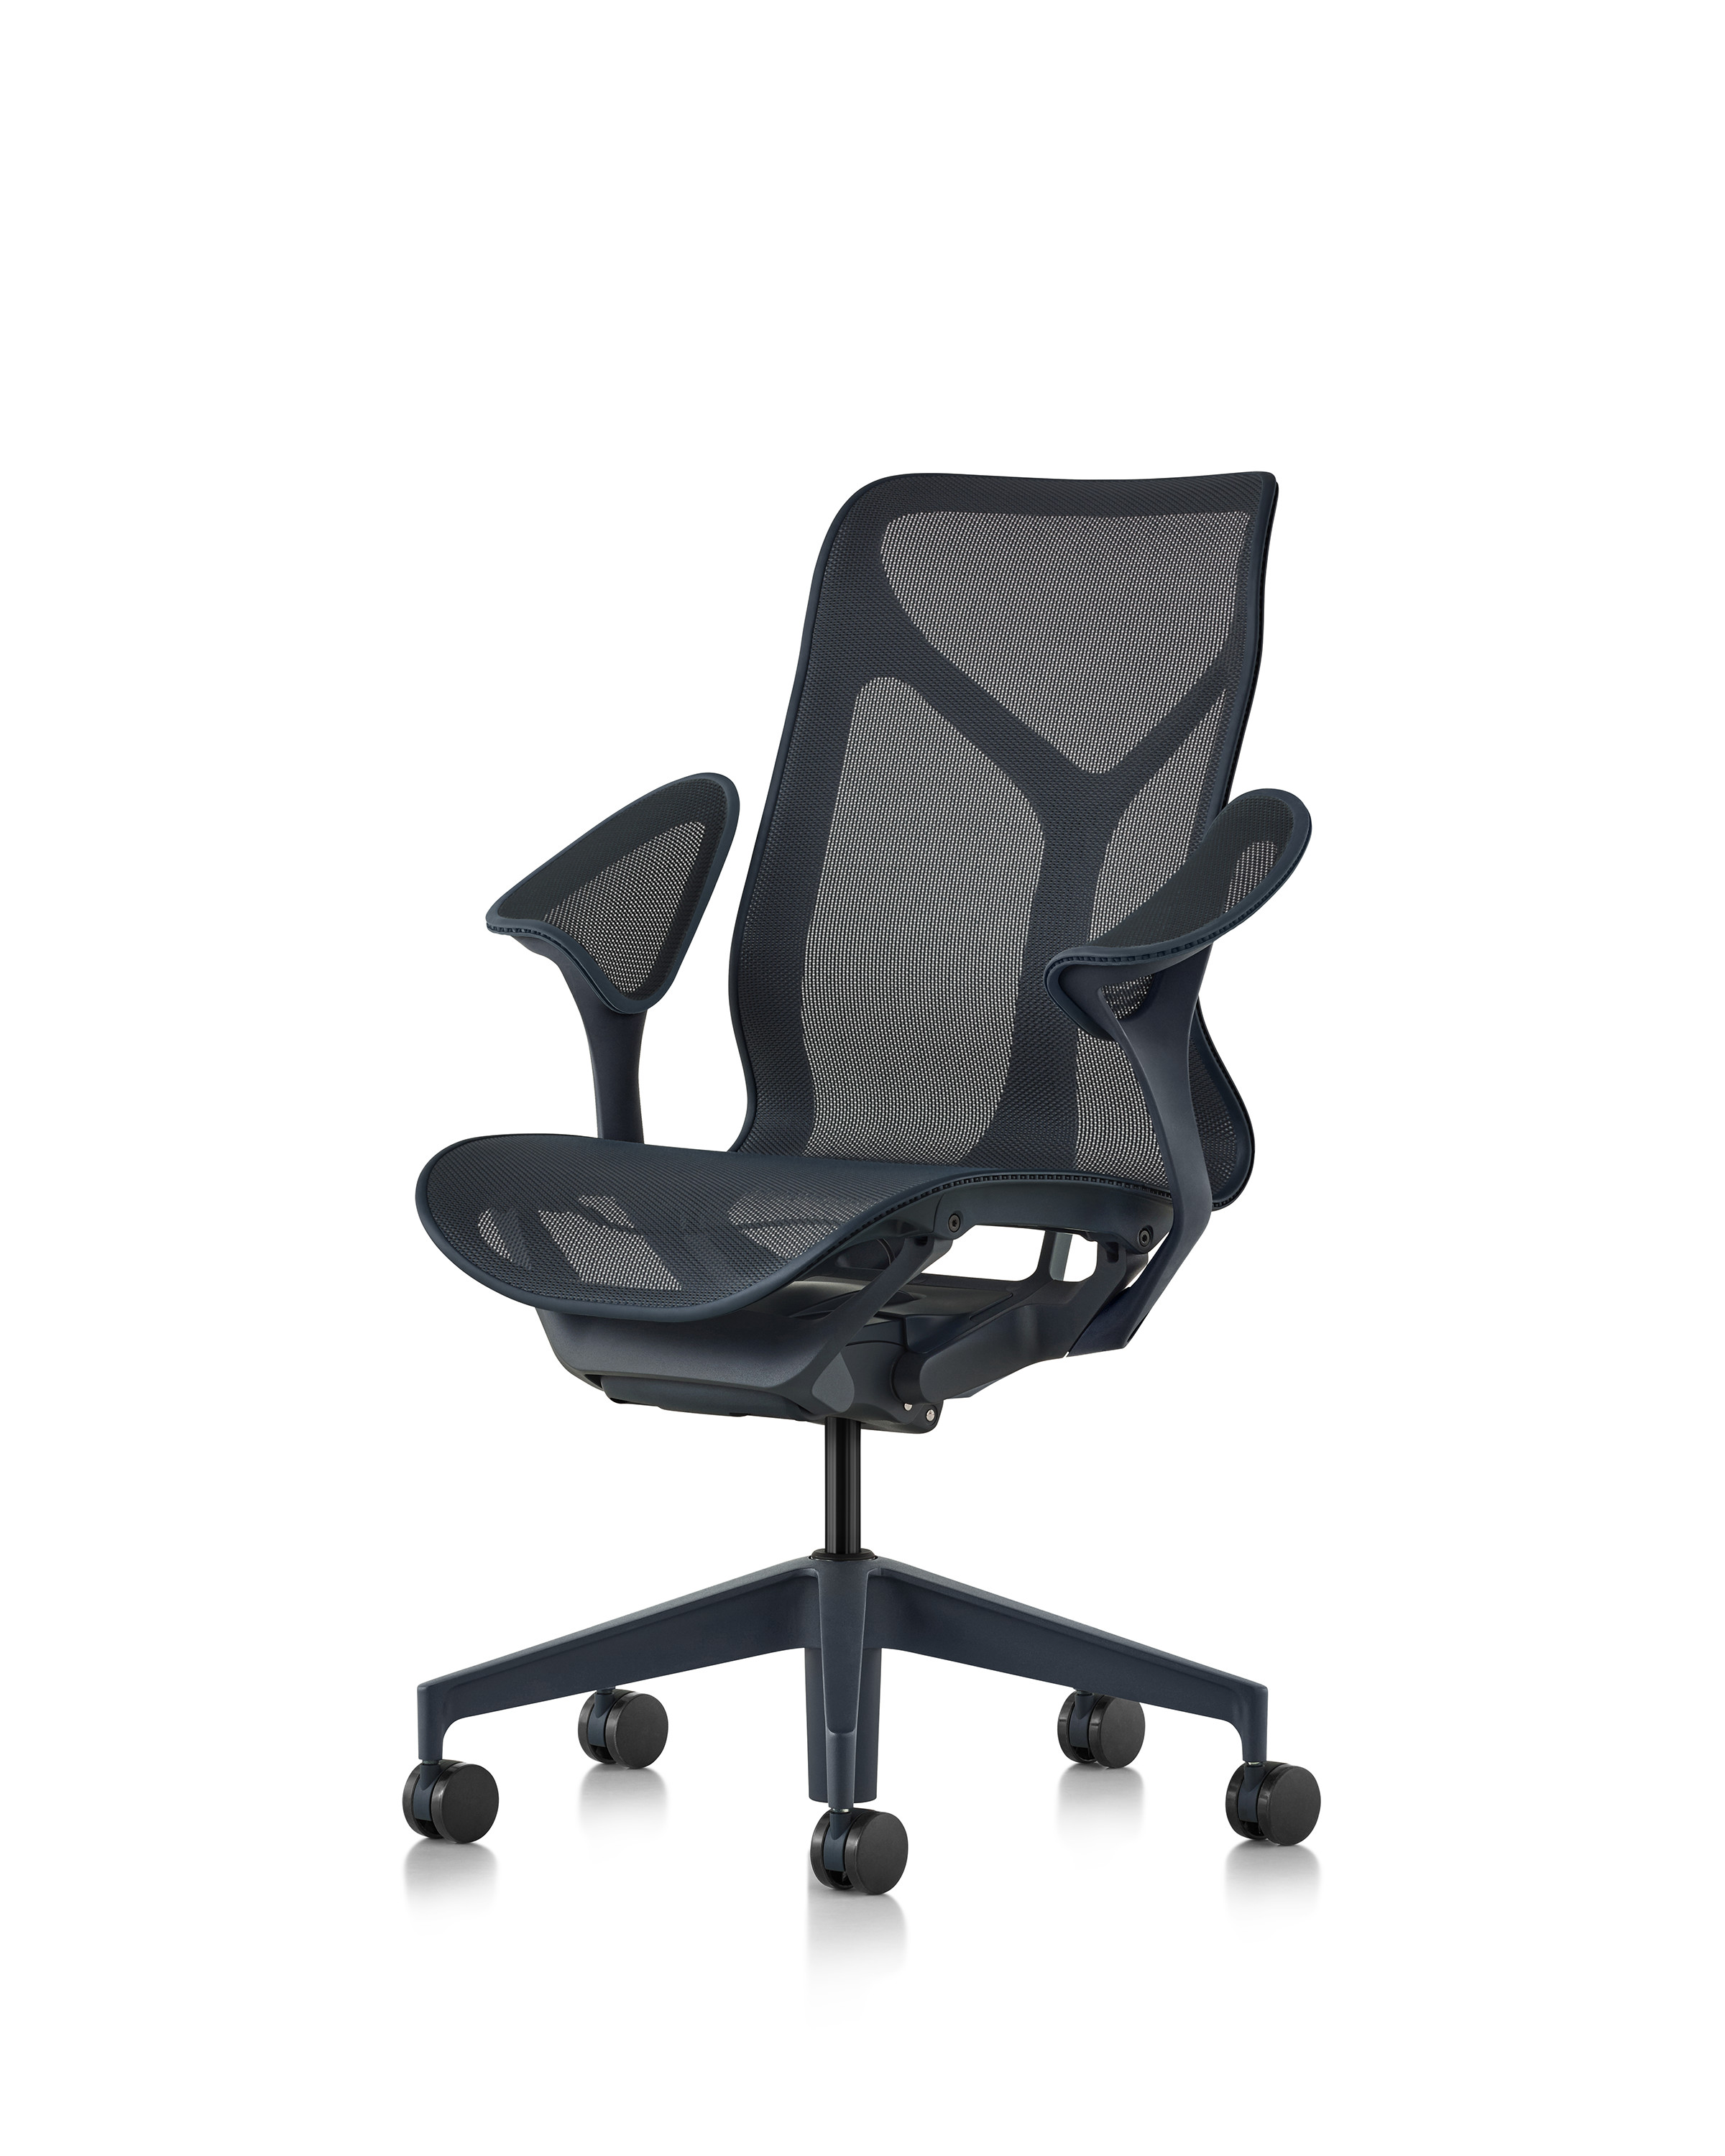 Image of Herman Miller Cosm Mid Back Chair